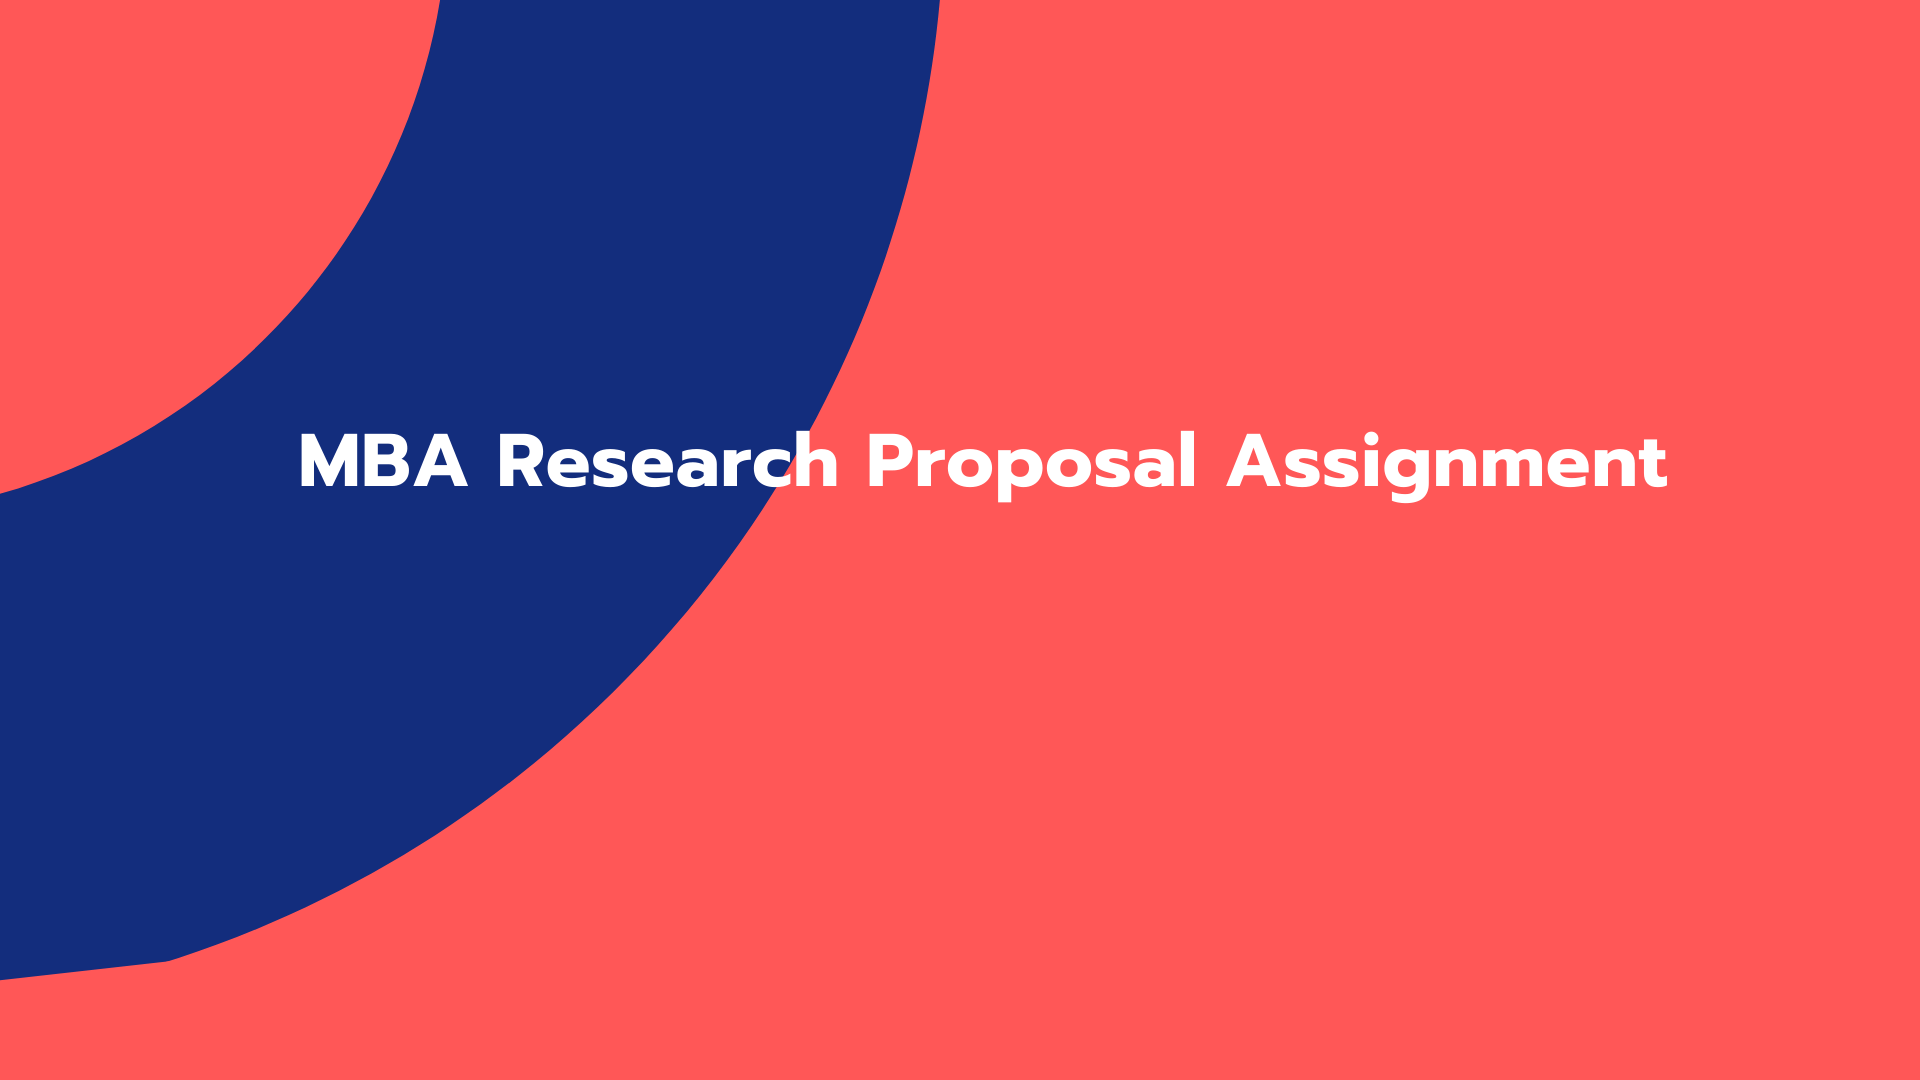 MBA Research Proposal Assignment